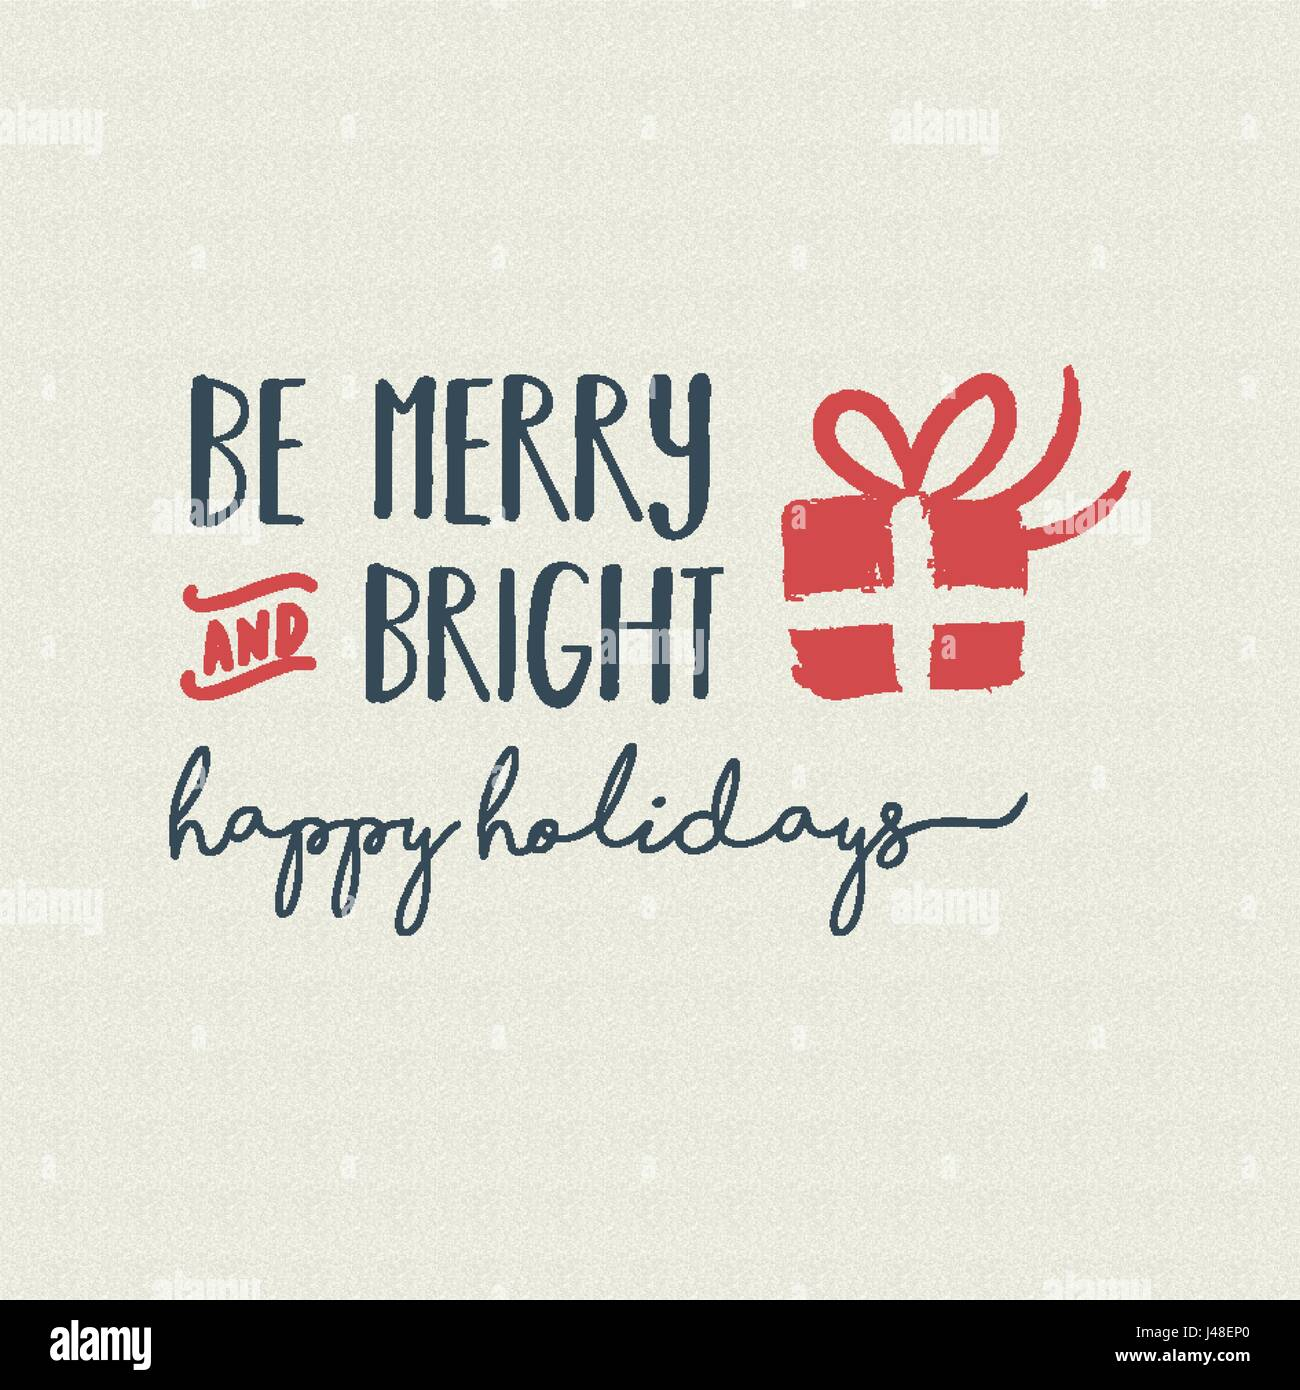 Christmas vintage calligraphic quote design be merry and bright christmas vintage calligraphic quote design be merry and bright lettering illustration for holiday season greeting card eps10 vector m4hsunfo